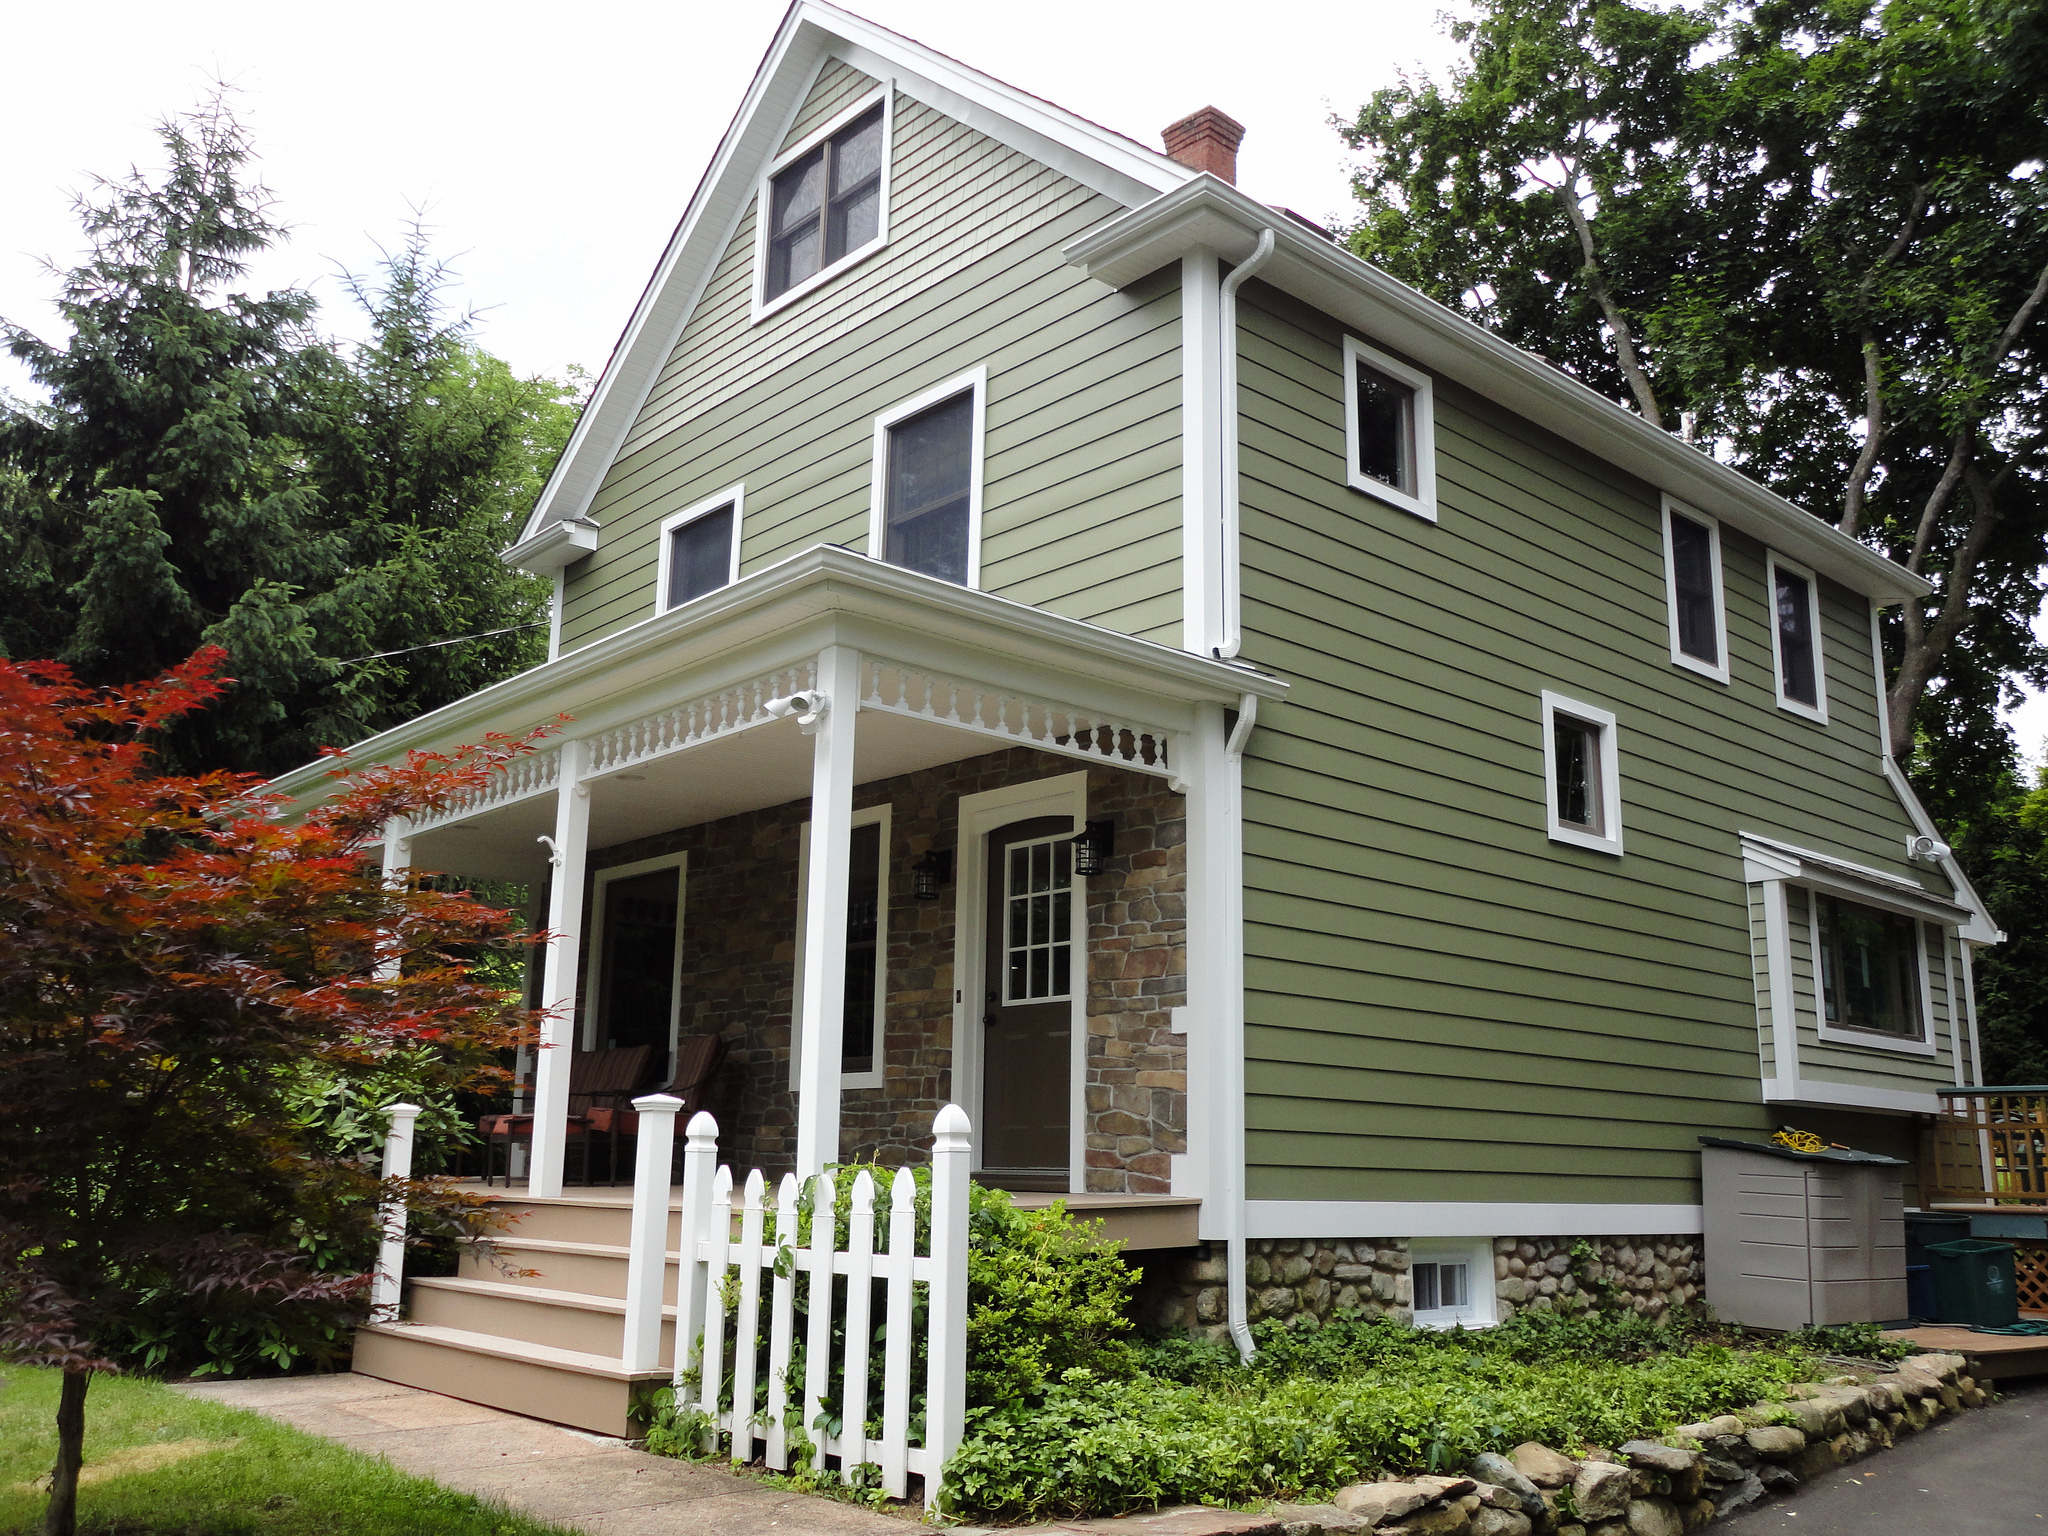 7 Popular Siding Materials To Consider: Best Siding Options For Your Oregon Home